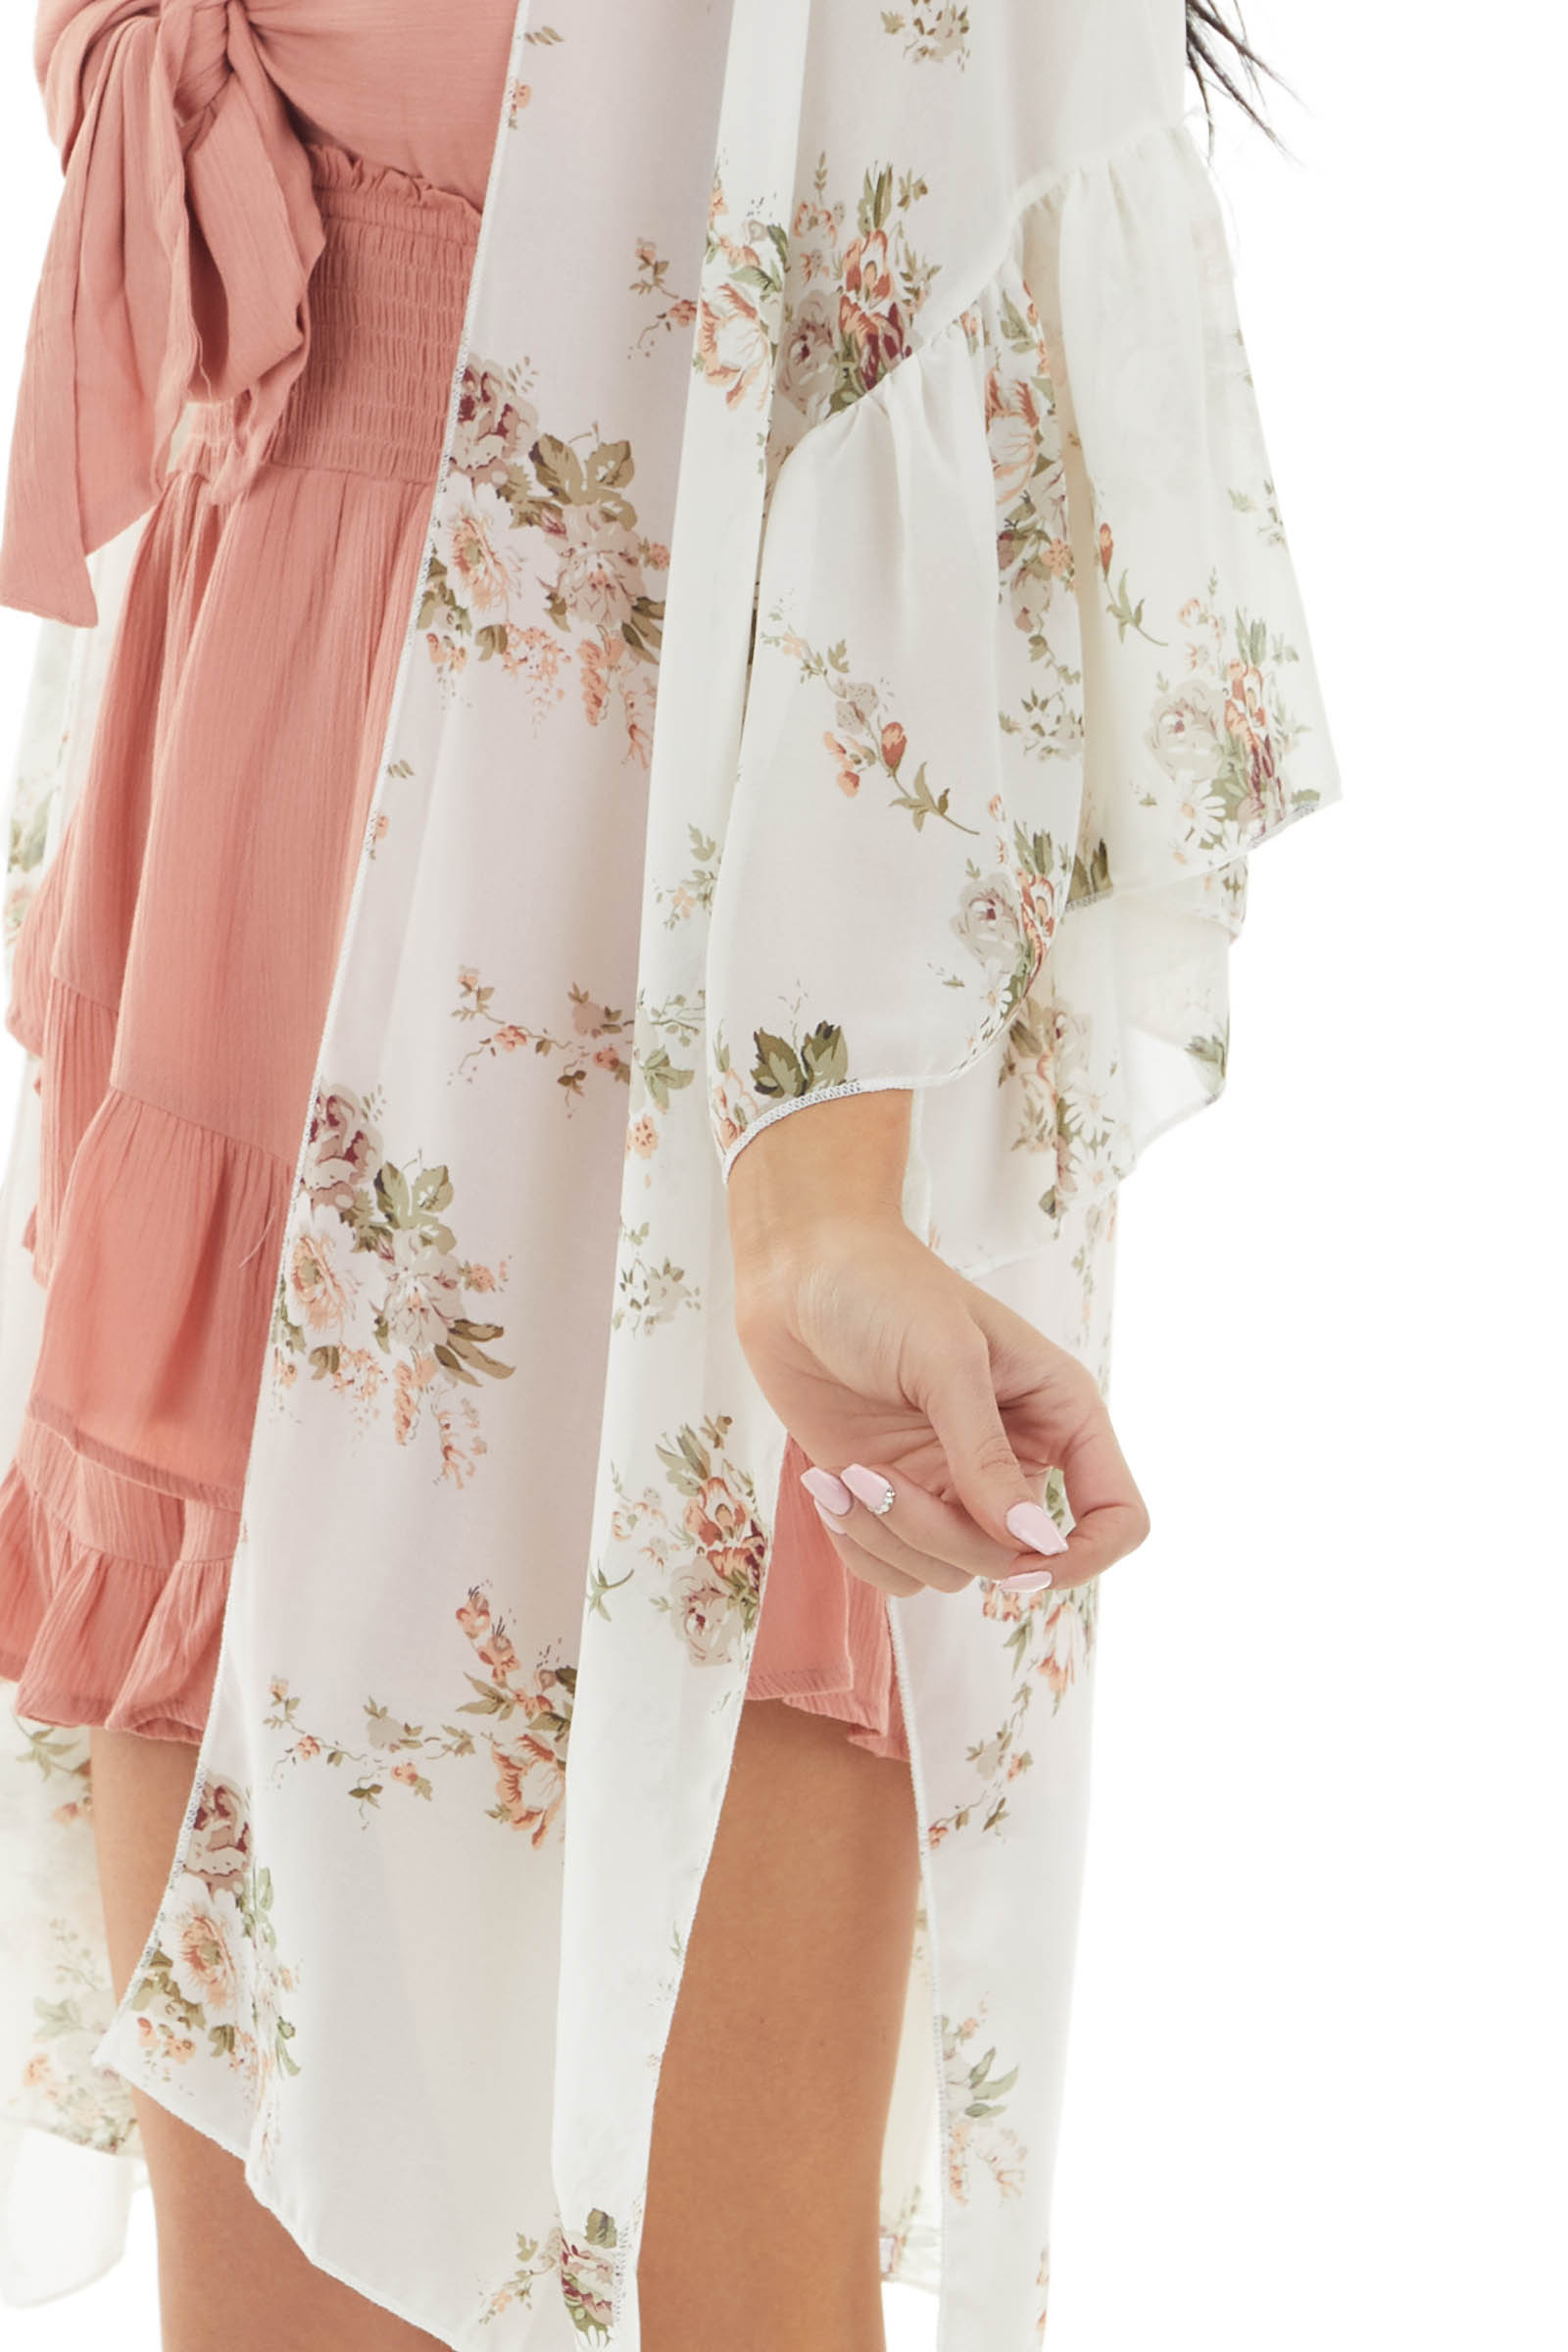 Ivory Floral Print Sheer Woven Kimono with Side Slits